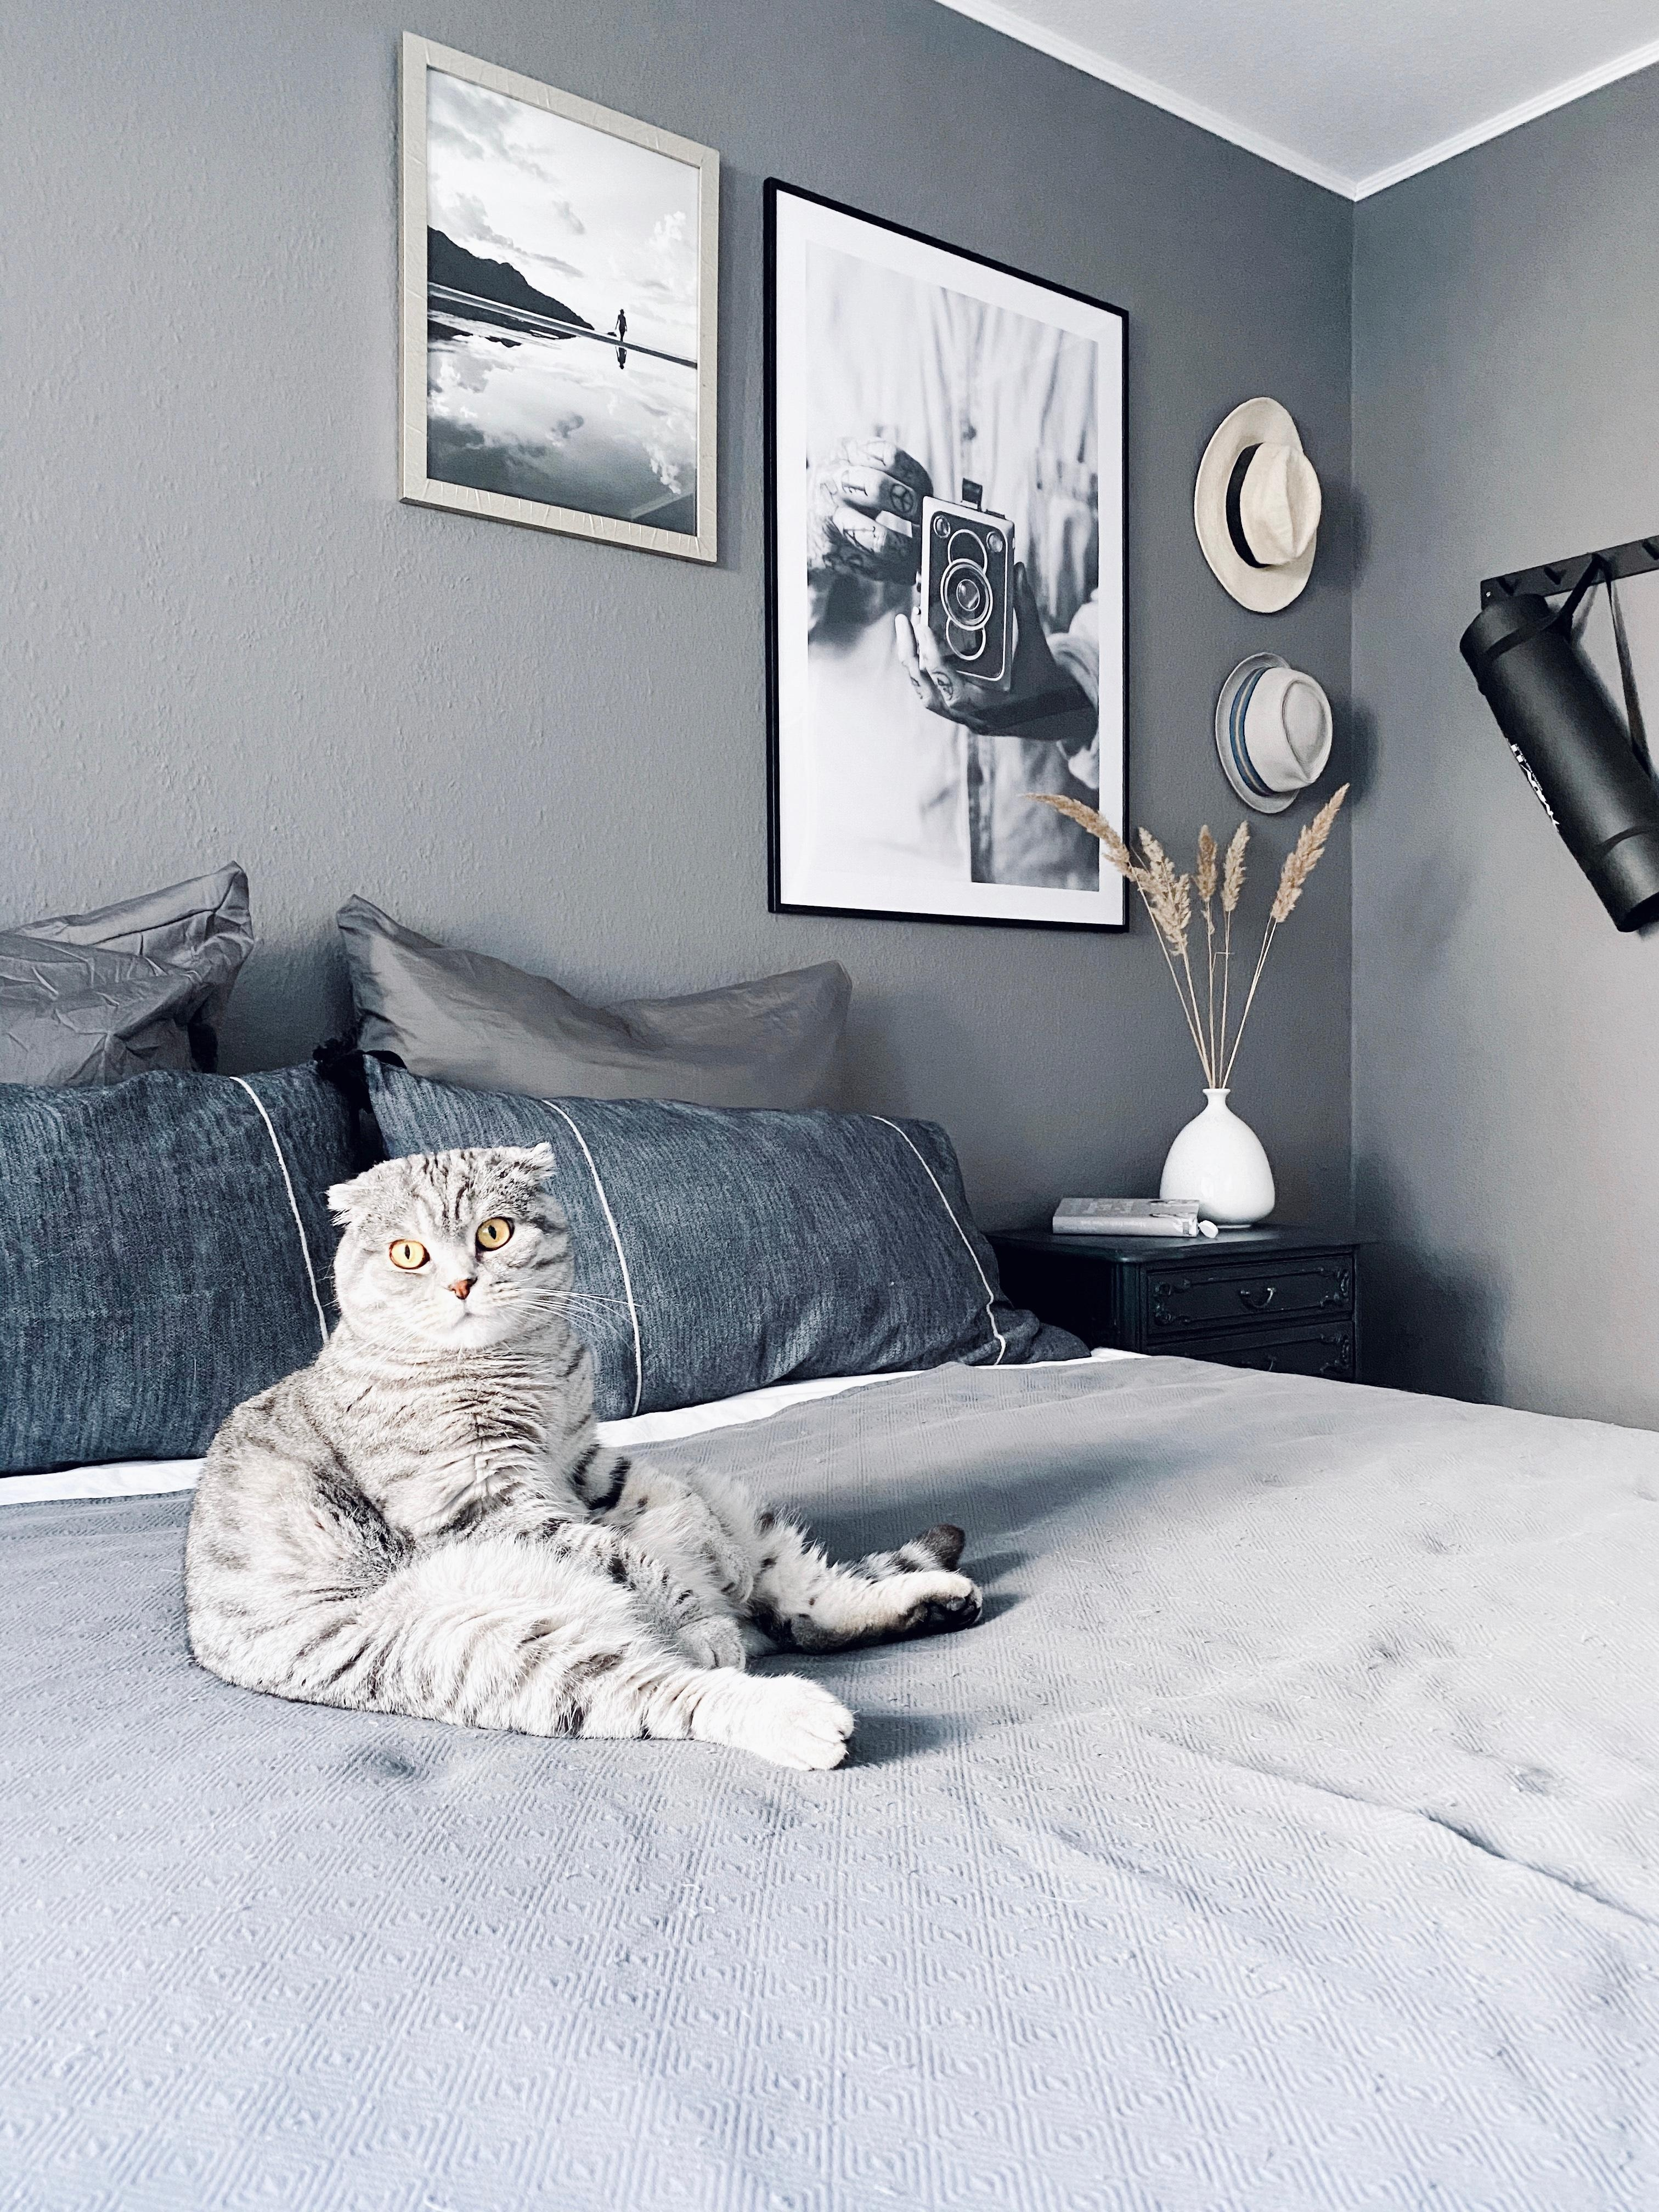 Happy Sunday! Hier ist #chillmodus angesagt ☺️ #bedroom #monochrome #catlover #sundaymood #nordichome #minimalistic